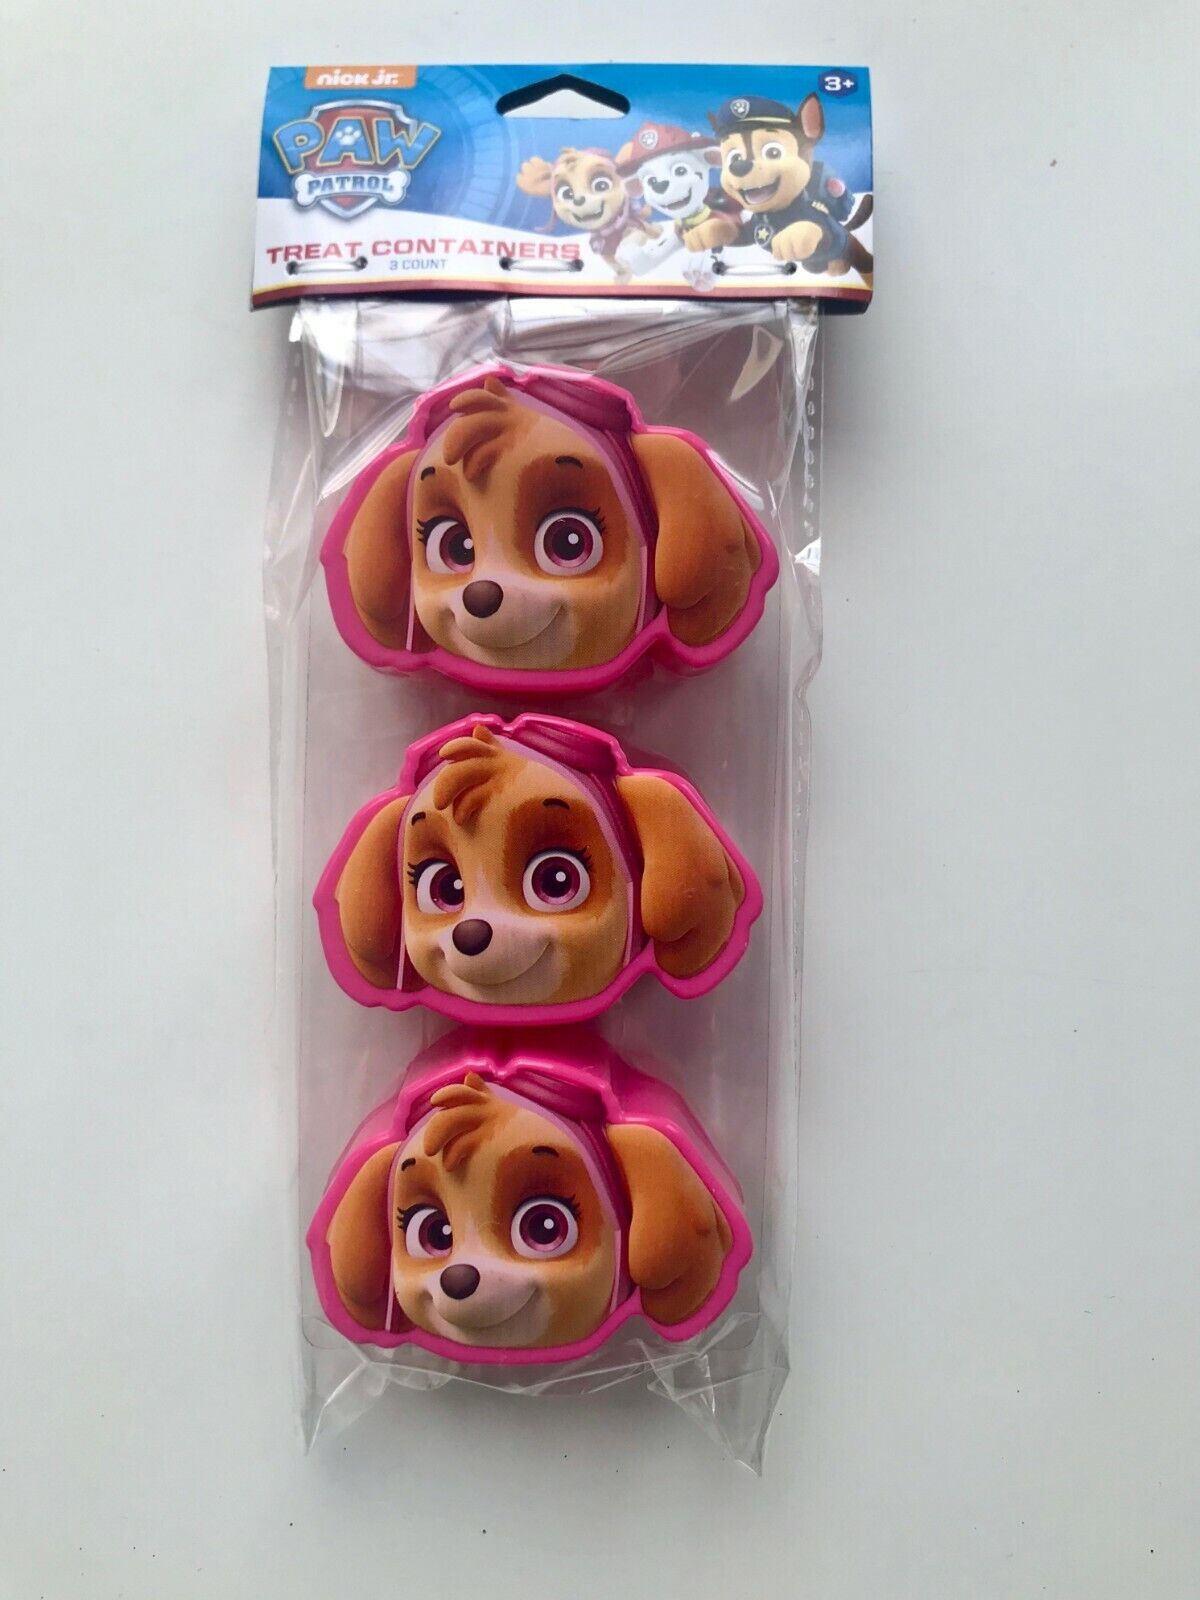 PAW PATROL TREAT CONTAINERS BIRTHDAY 3 PARTY FAVORS EASTER E